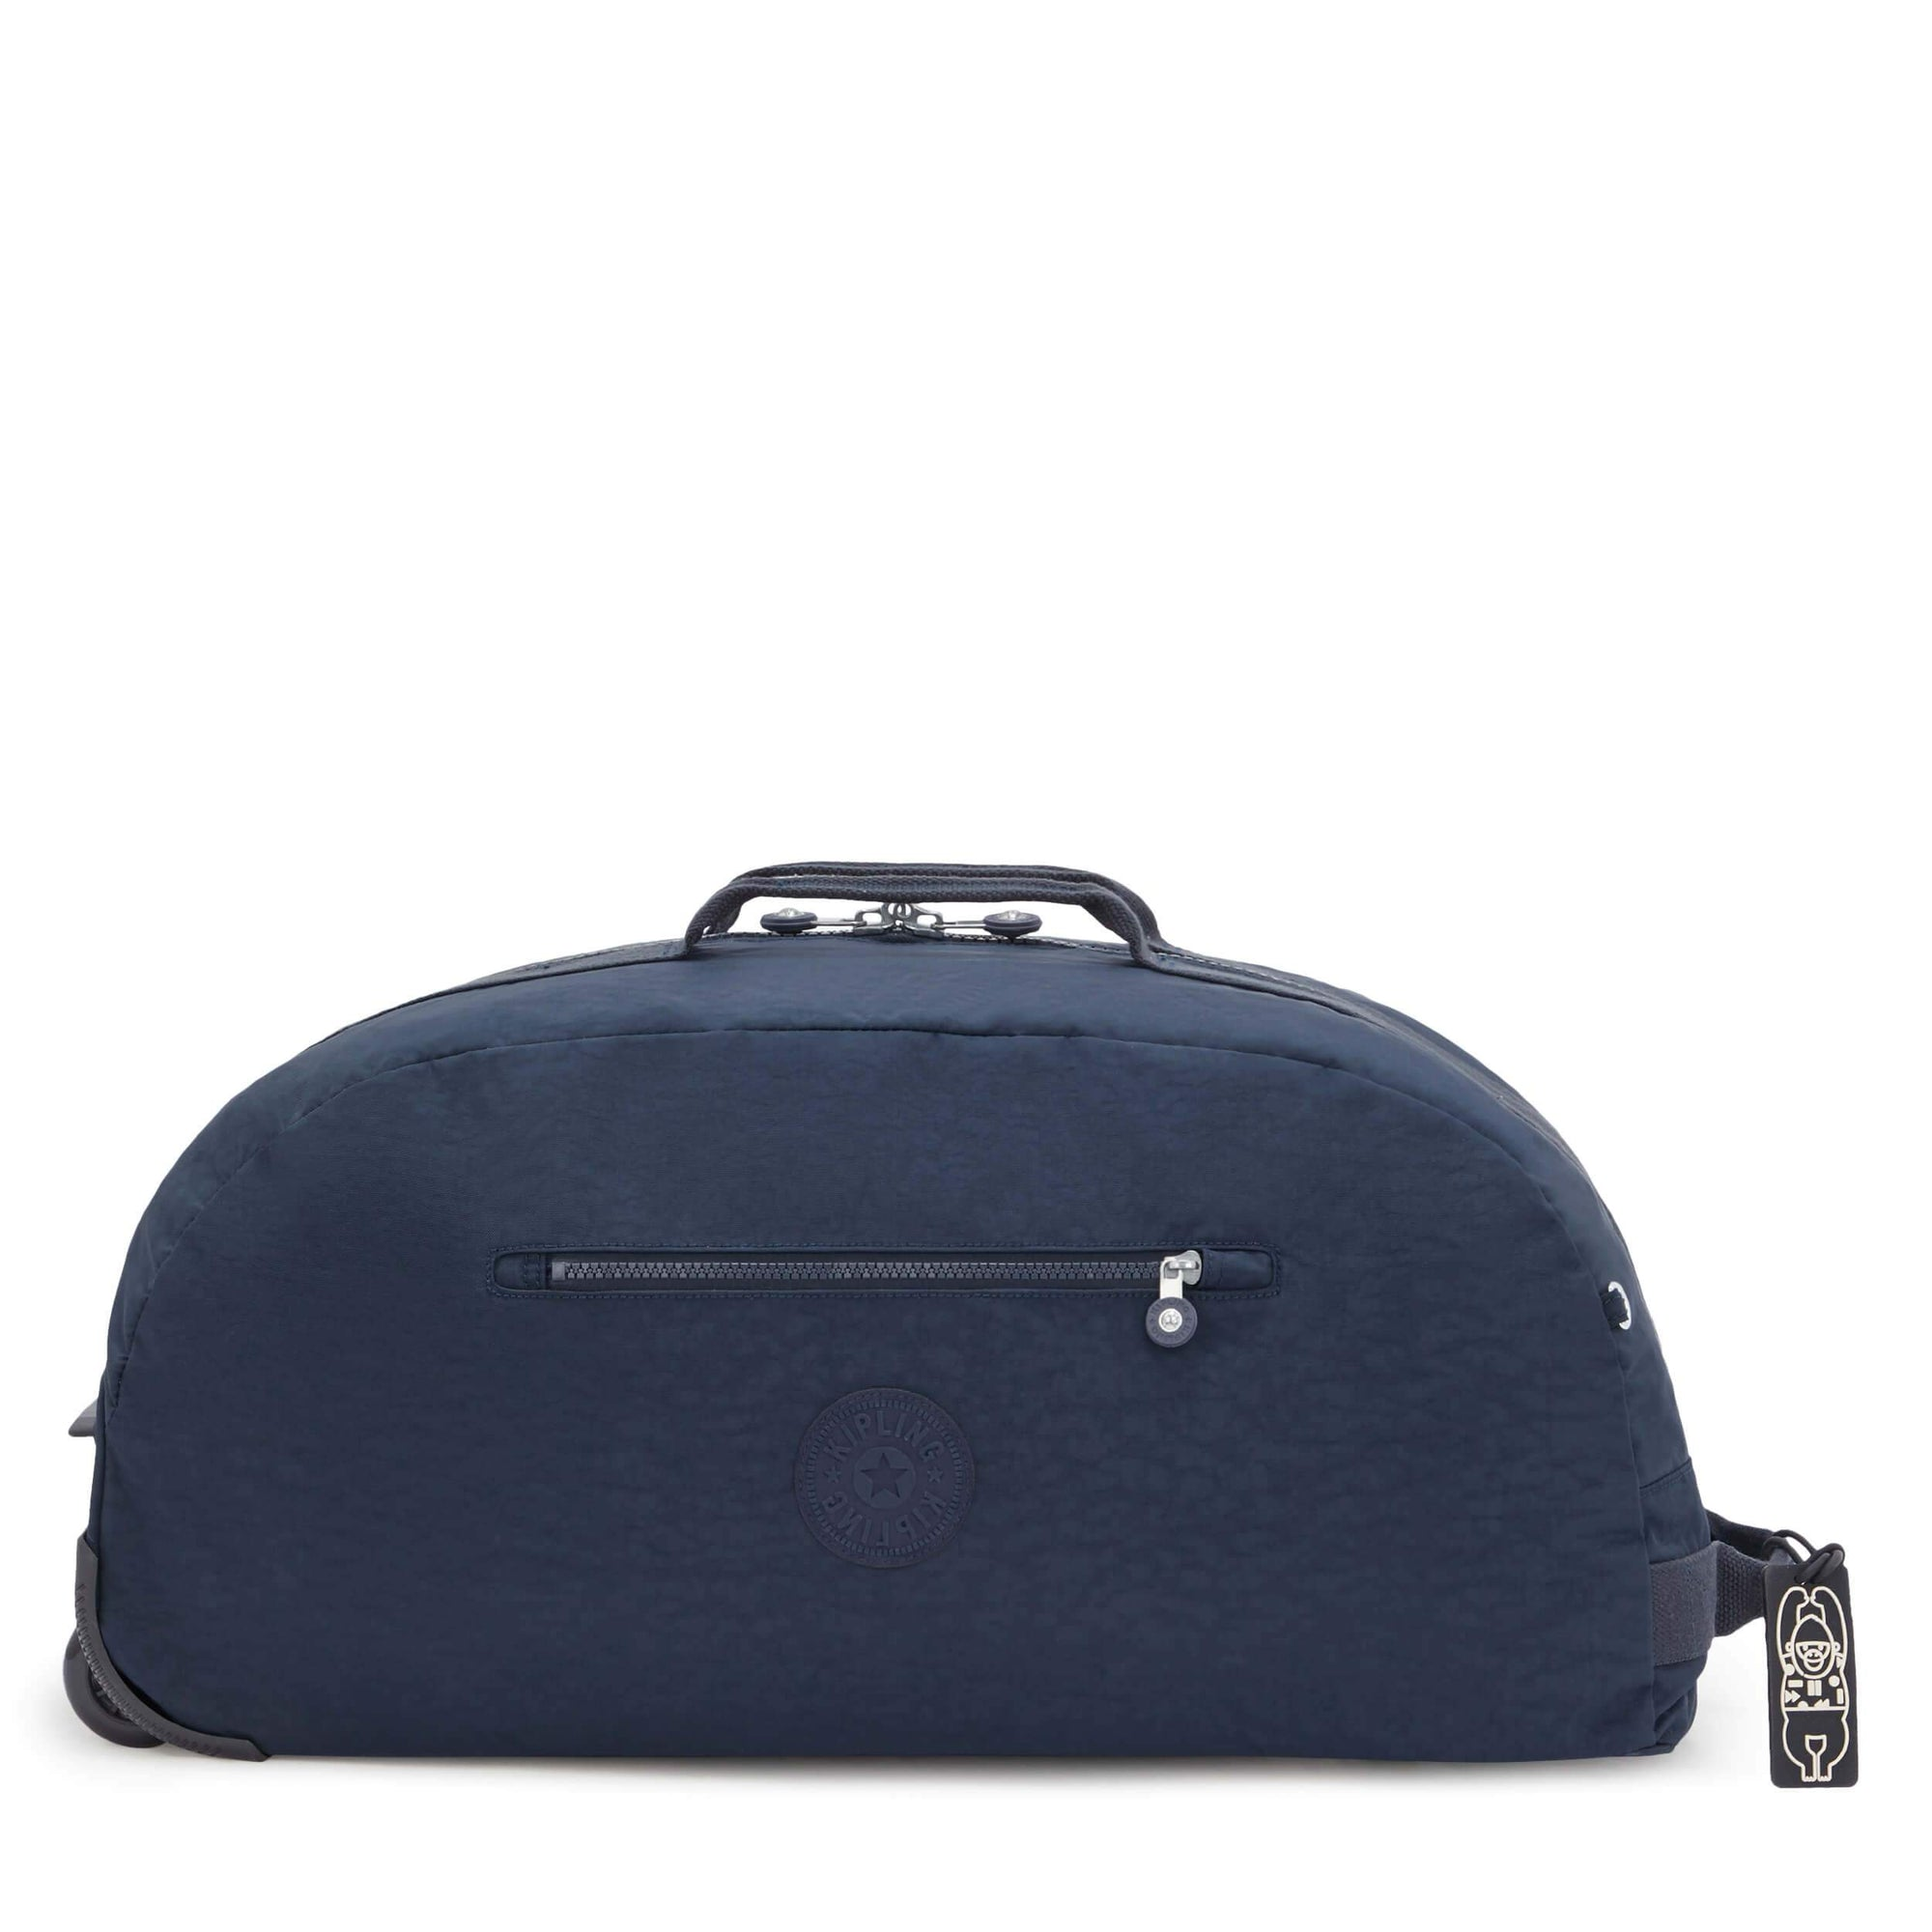 Maleta Kipling Devin on Wheels Blue Bleu 2 KI706396V